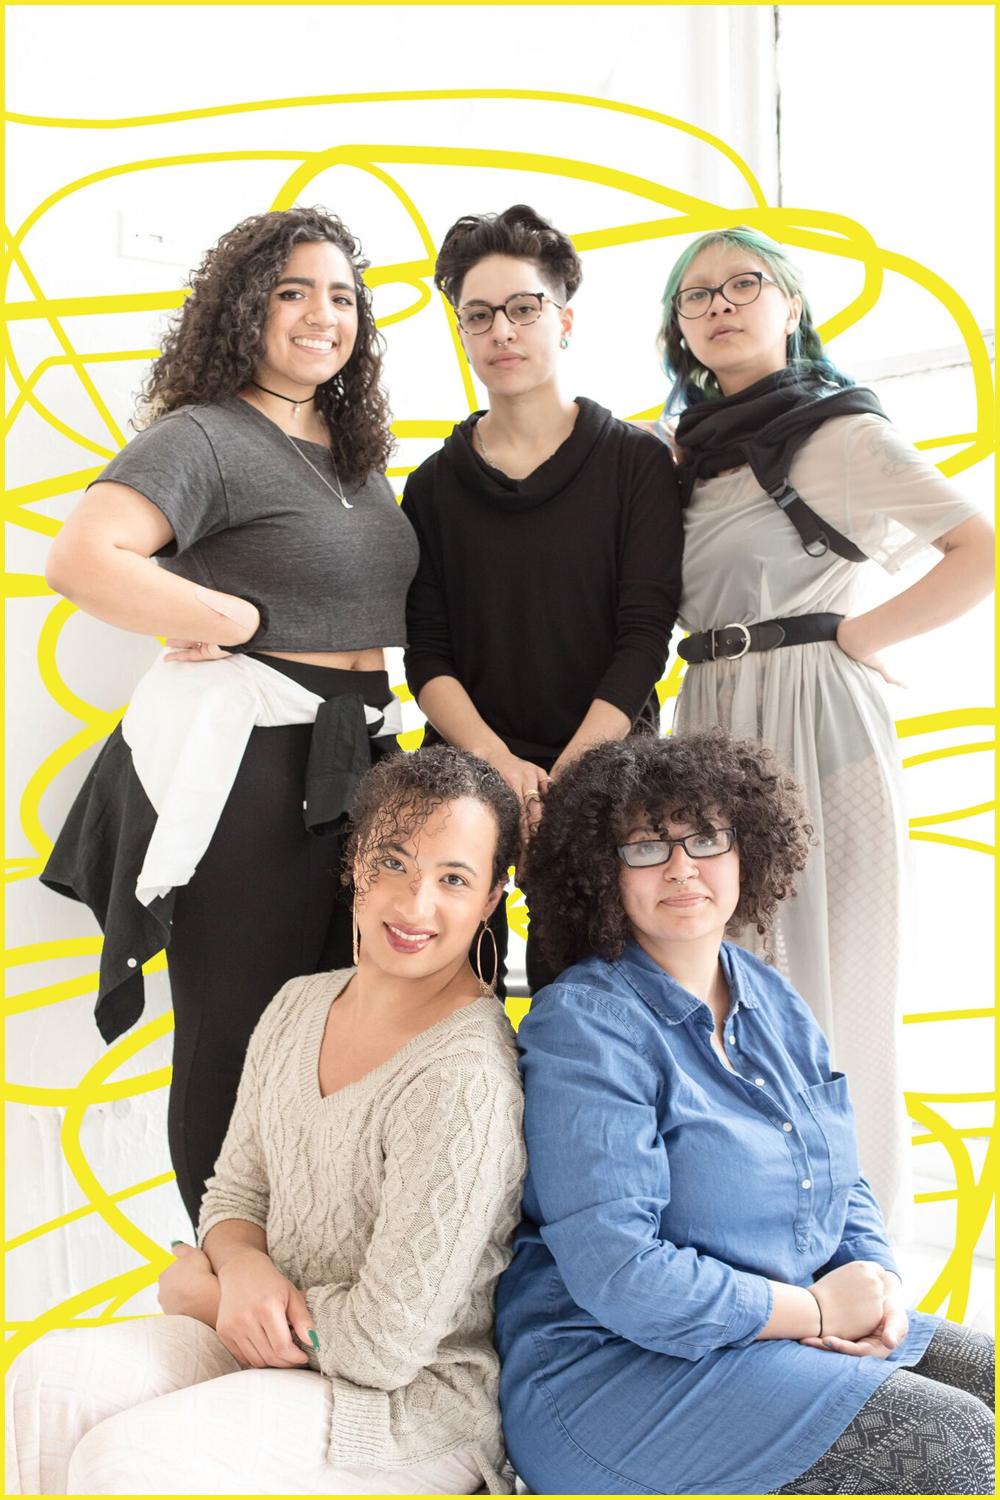 Clockwise from top left: playwright Juliany Taveras, director Manny Rivera, stage manager Rafael Tawasil, dramaturg/actor Jackie Torres, choreographer Ianne Fields Stewart